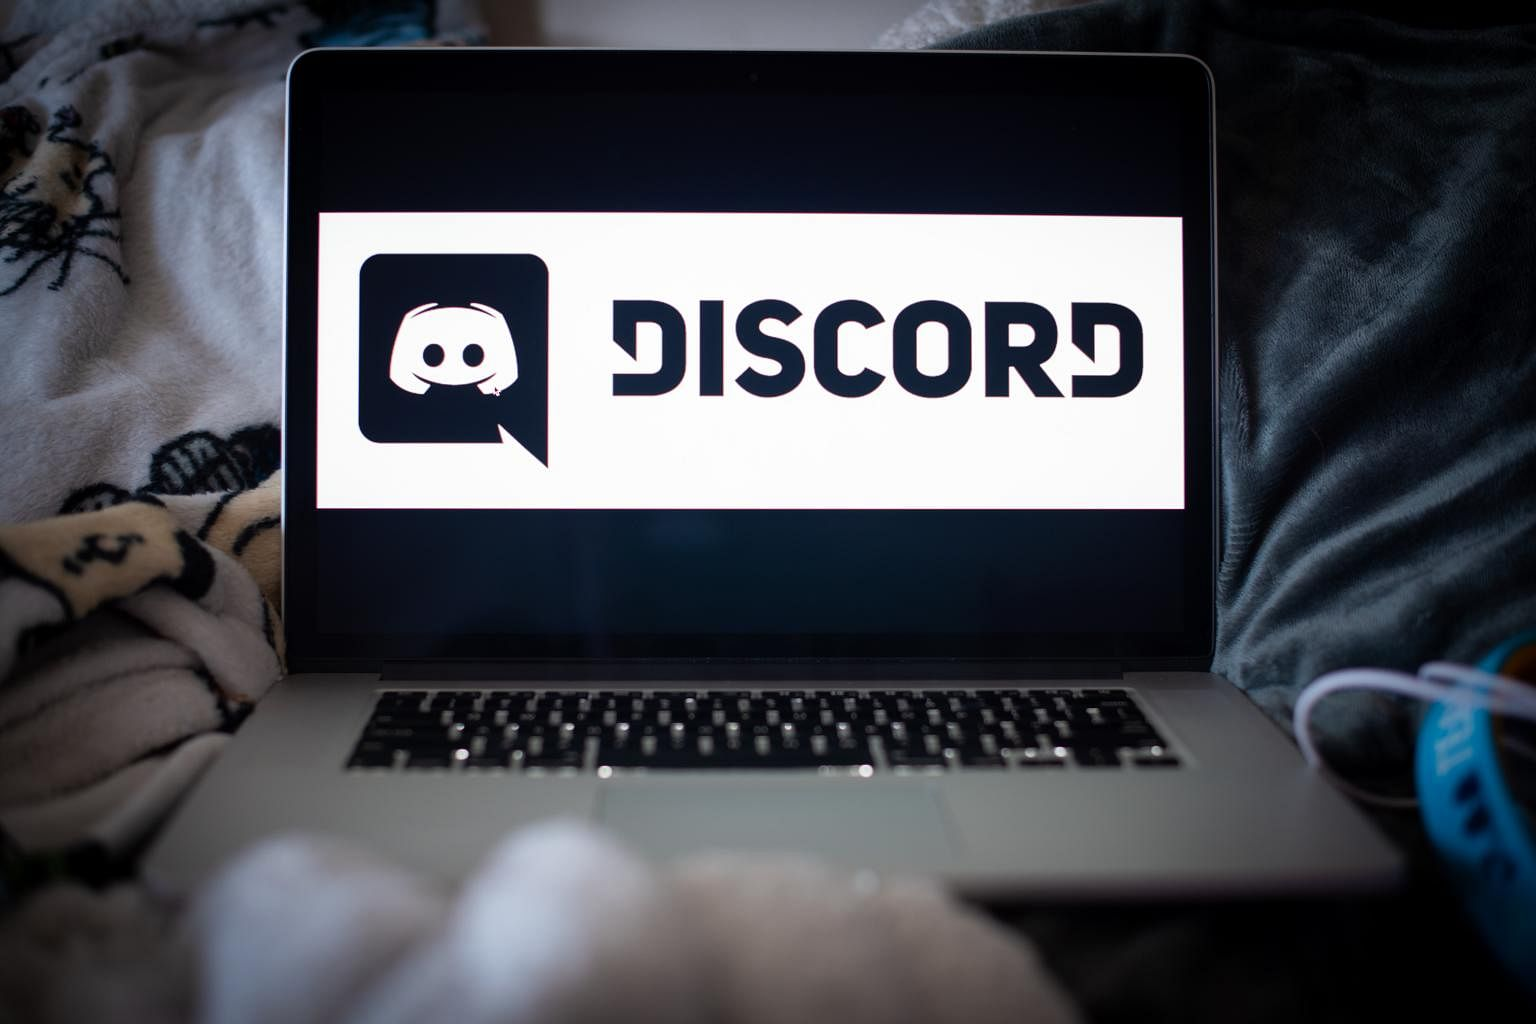 Microsoft's US$10b plan to buy Discord: Why the fuss over a chat app for  video games, Tech News News & Top Stories - The Straits Times